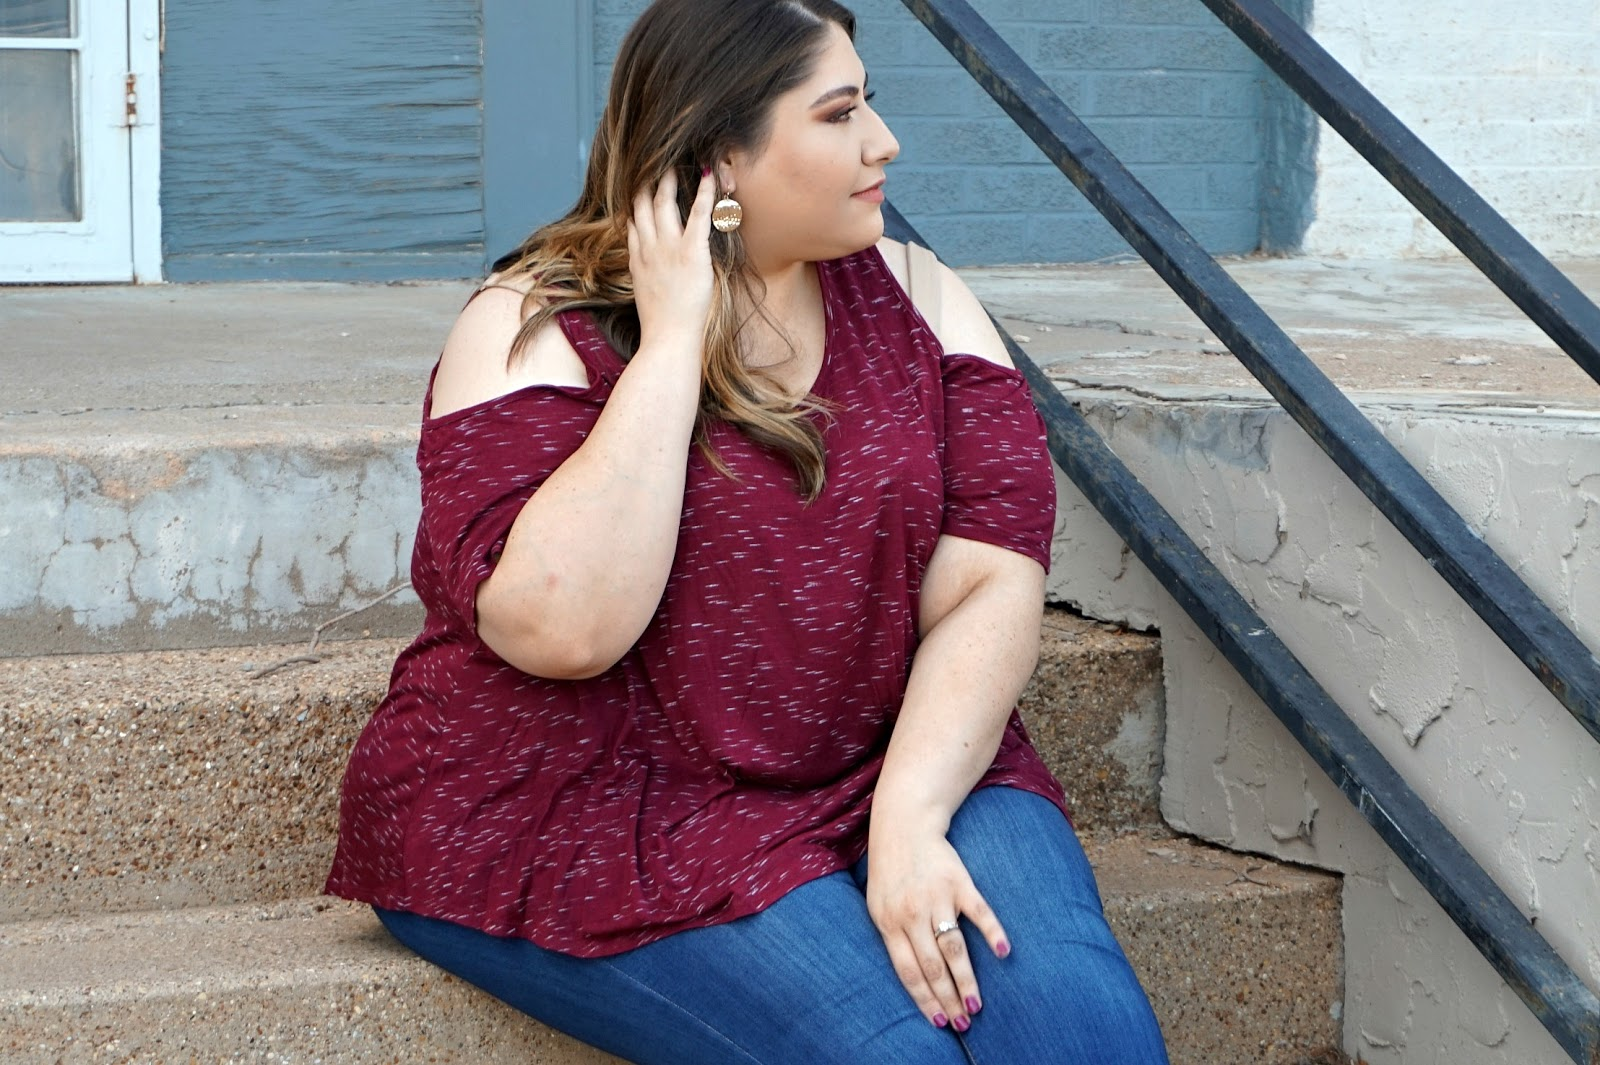 Cold Shoulder Plus Size Top | Easy & Cute Plus Size Outfits | Dia & Co Plus Size Clothing Subscription | Plus Size Outfits // Beauty With Lily, A West Texas Beauty, Fashion & Lifestyle Blog